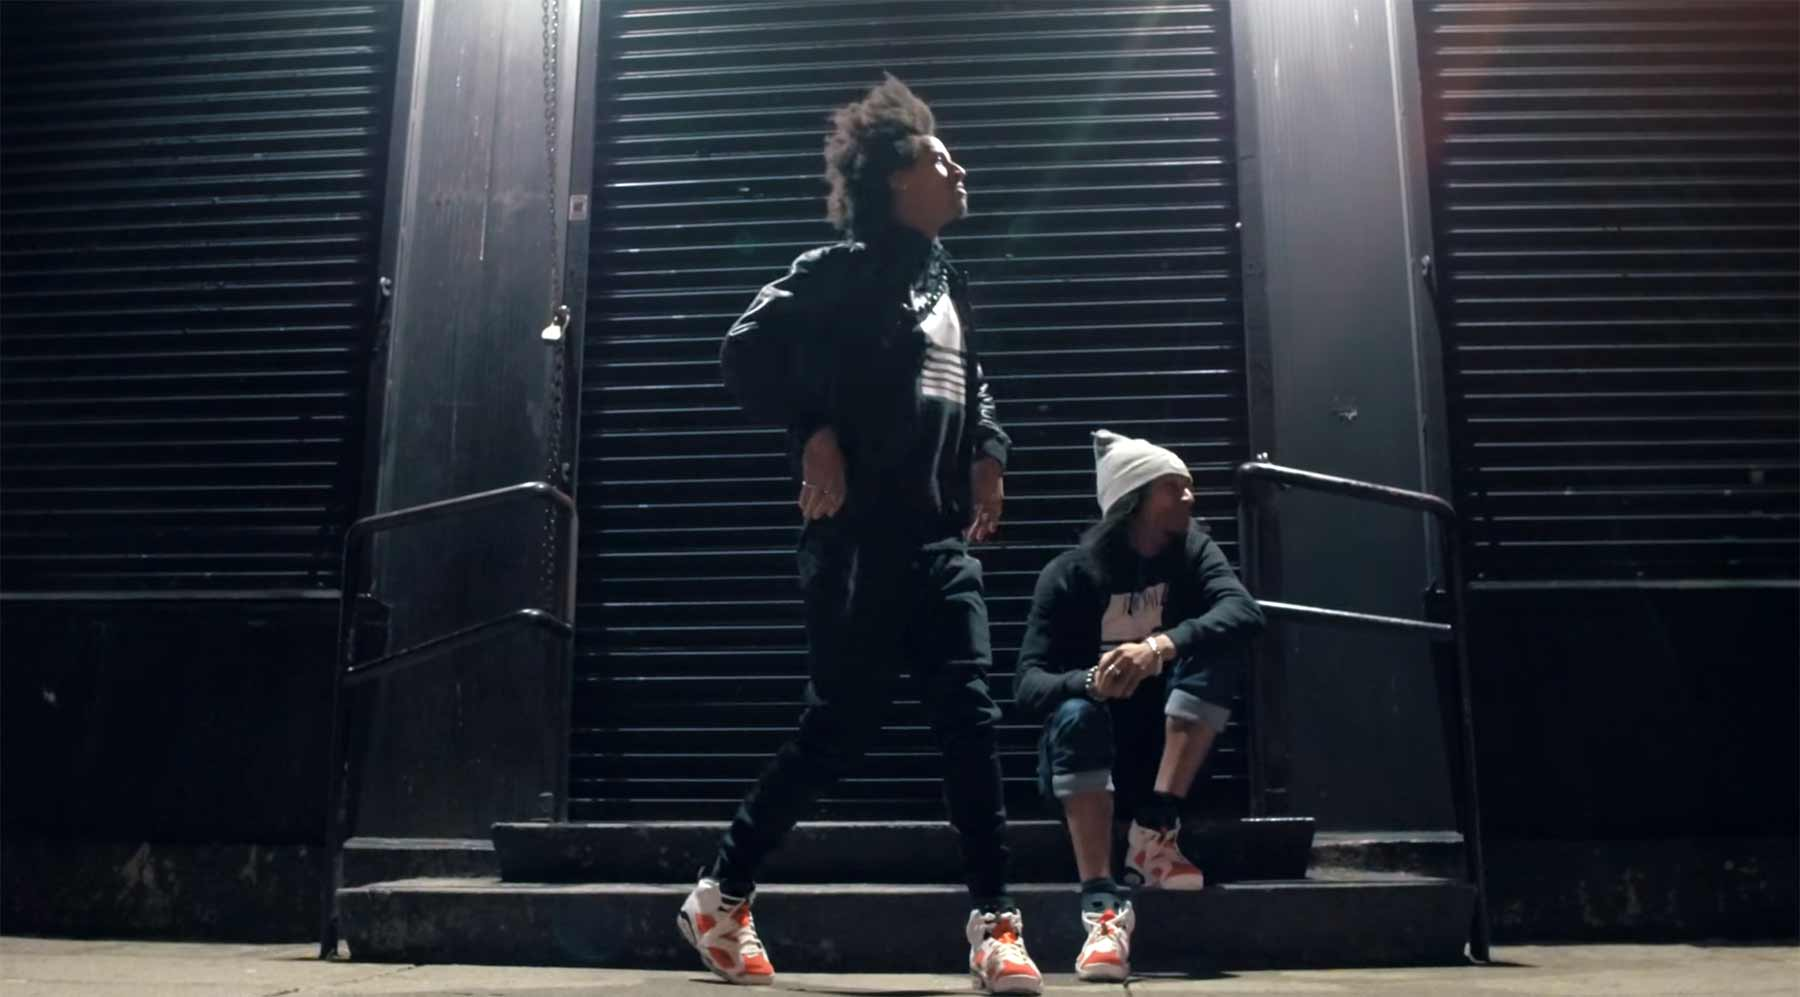 Les Twins - What Happened? Les-twins-what-happened